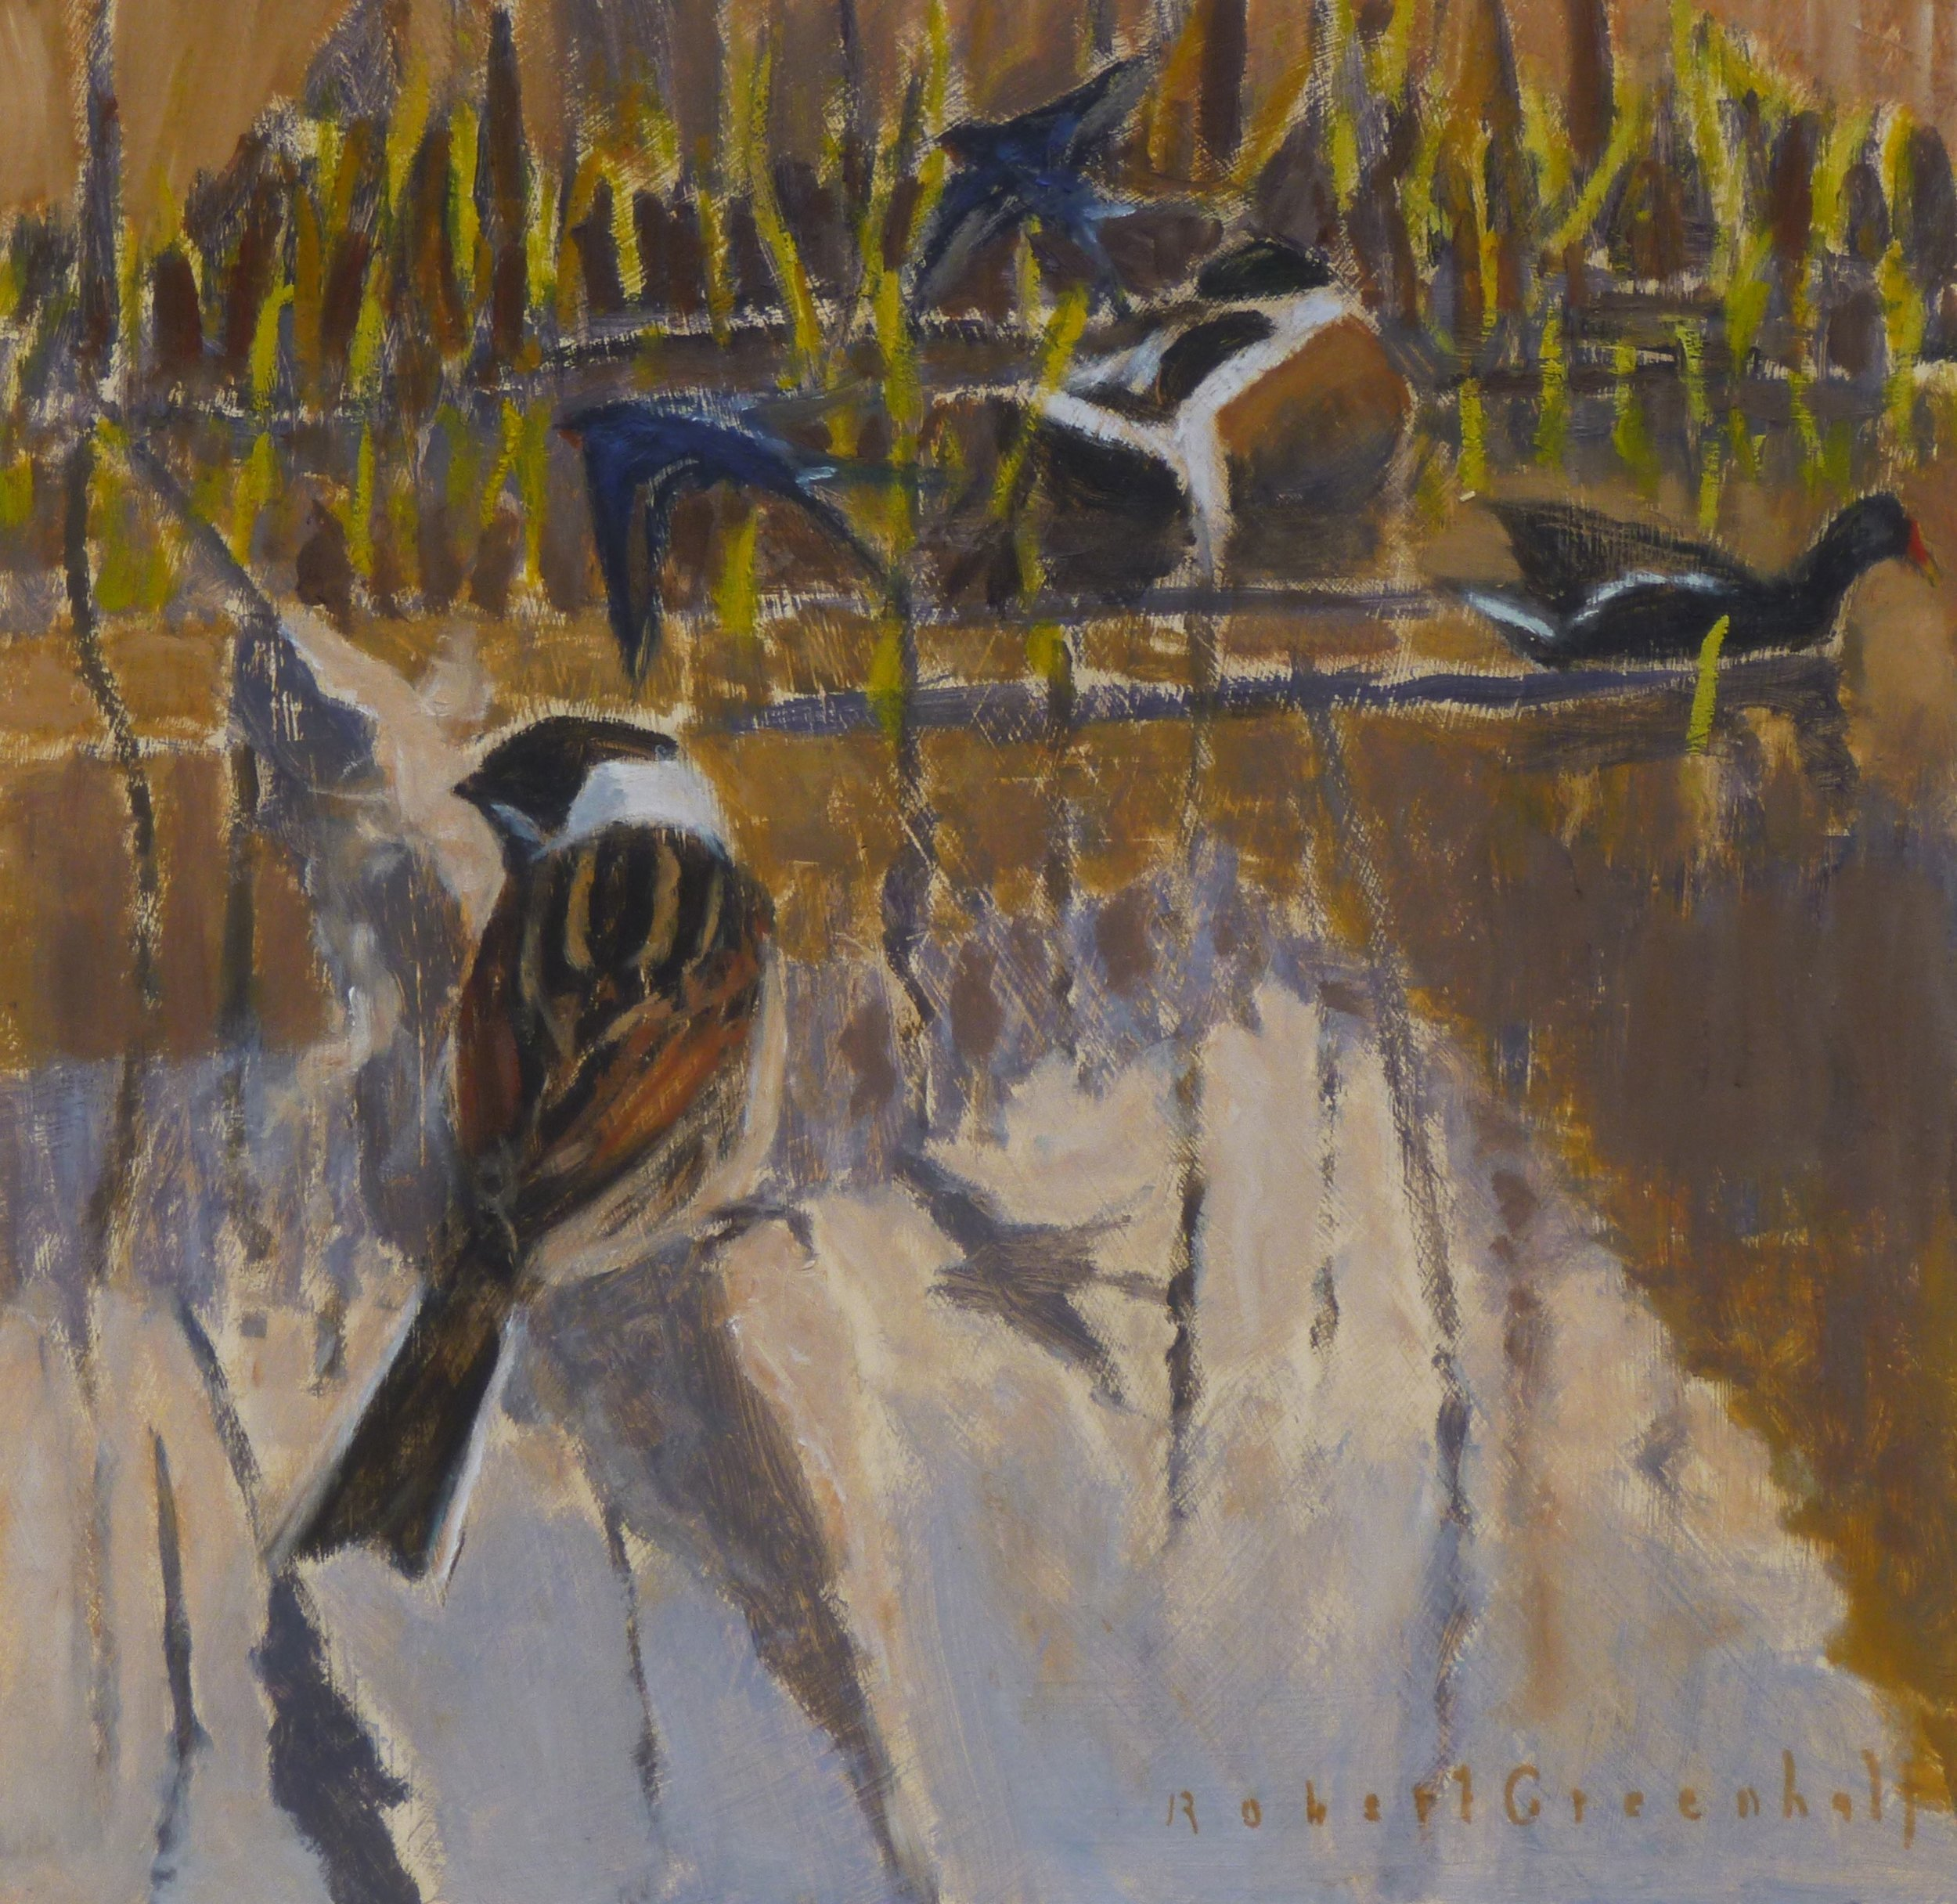 Reed Bunting, Moorhen, Swallows  oil  24cmx24cm  sold